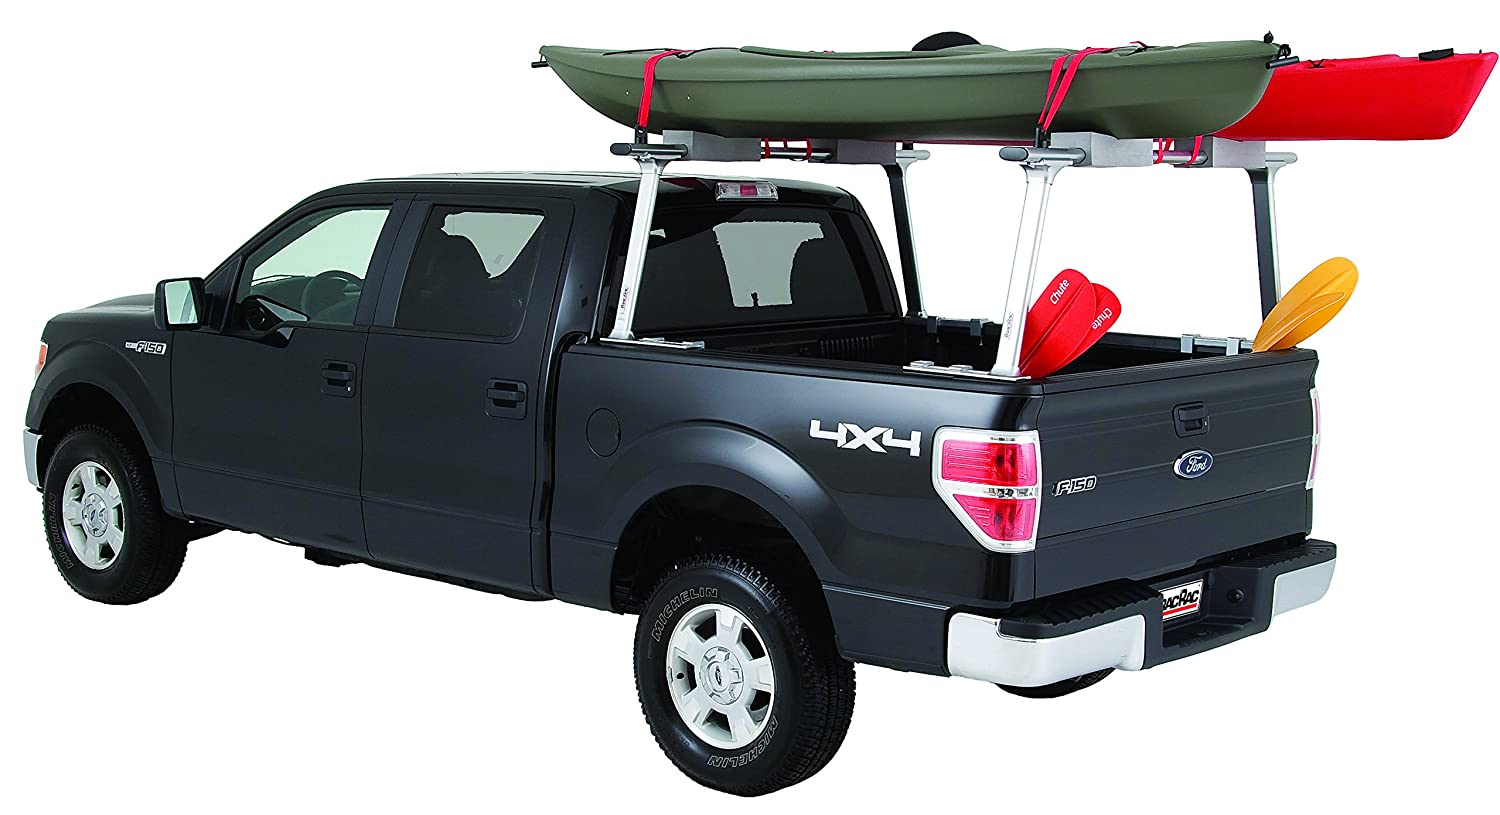 Top Kayak Racks for Tacoma Truck